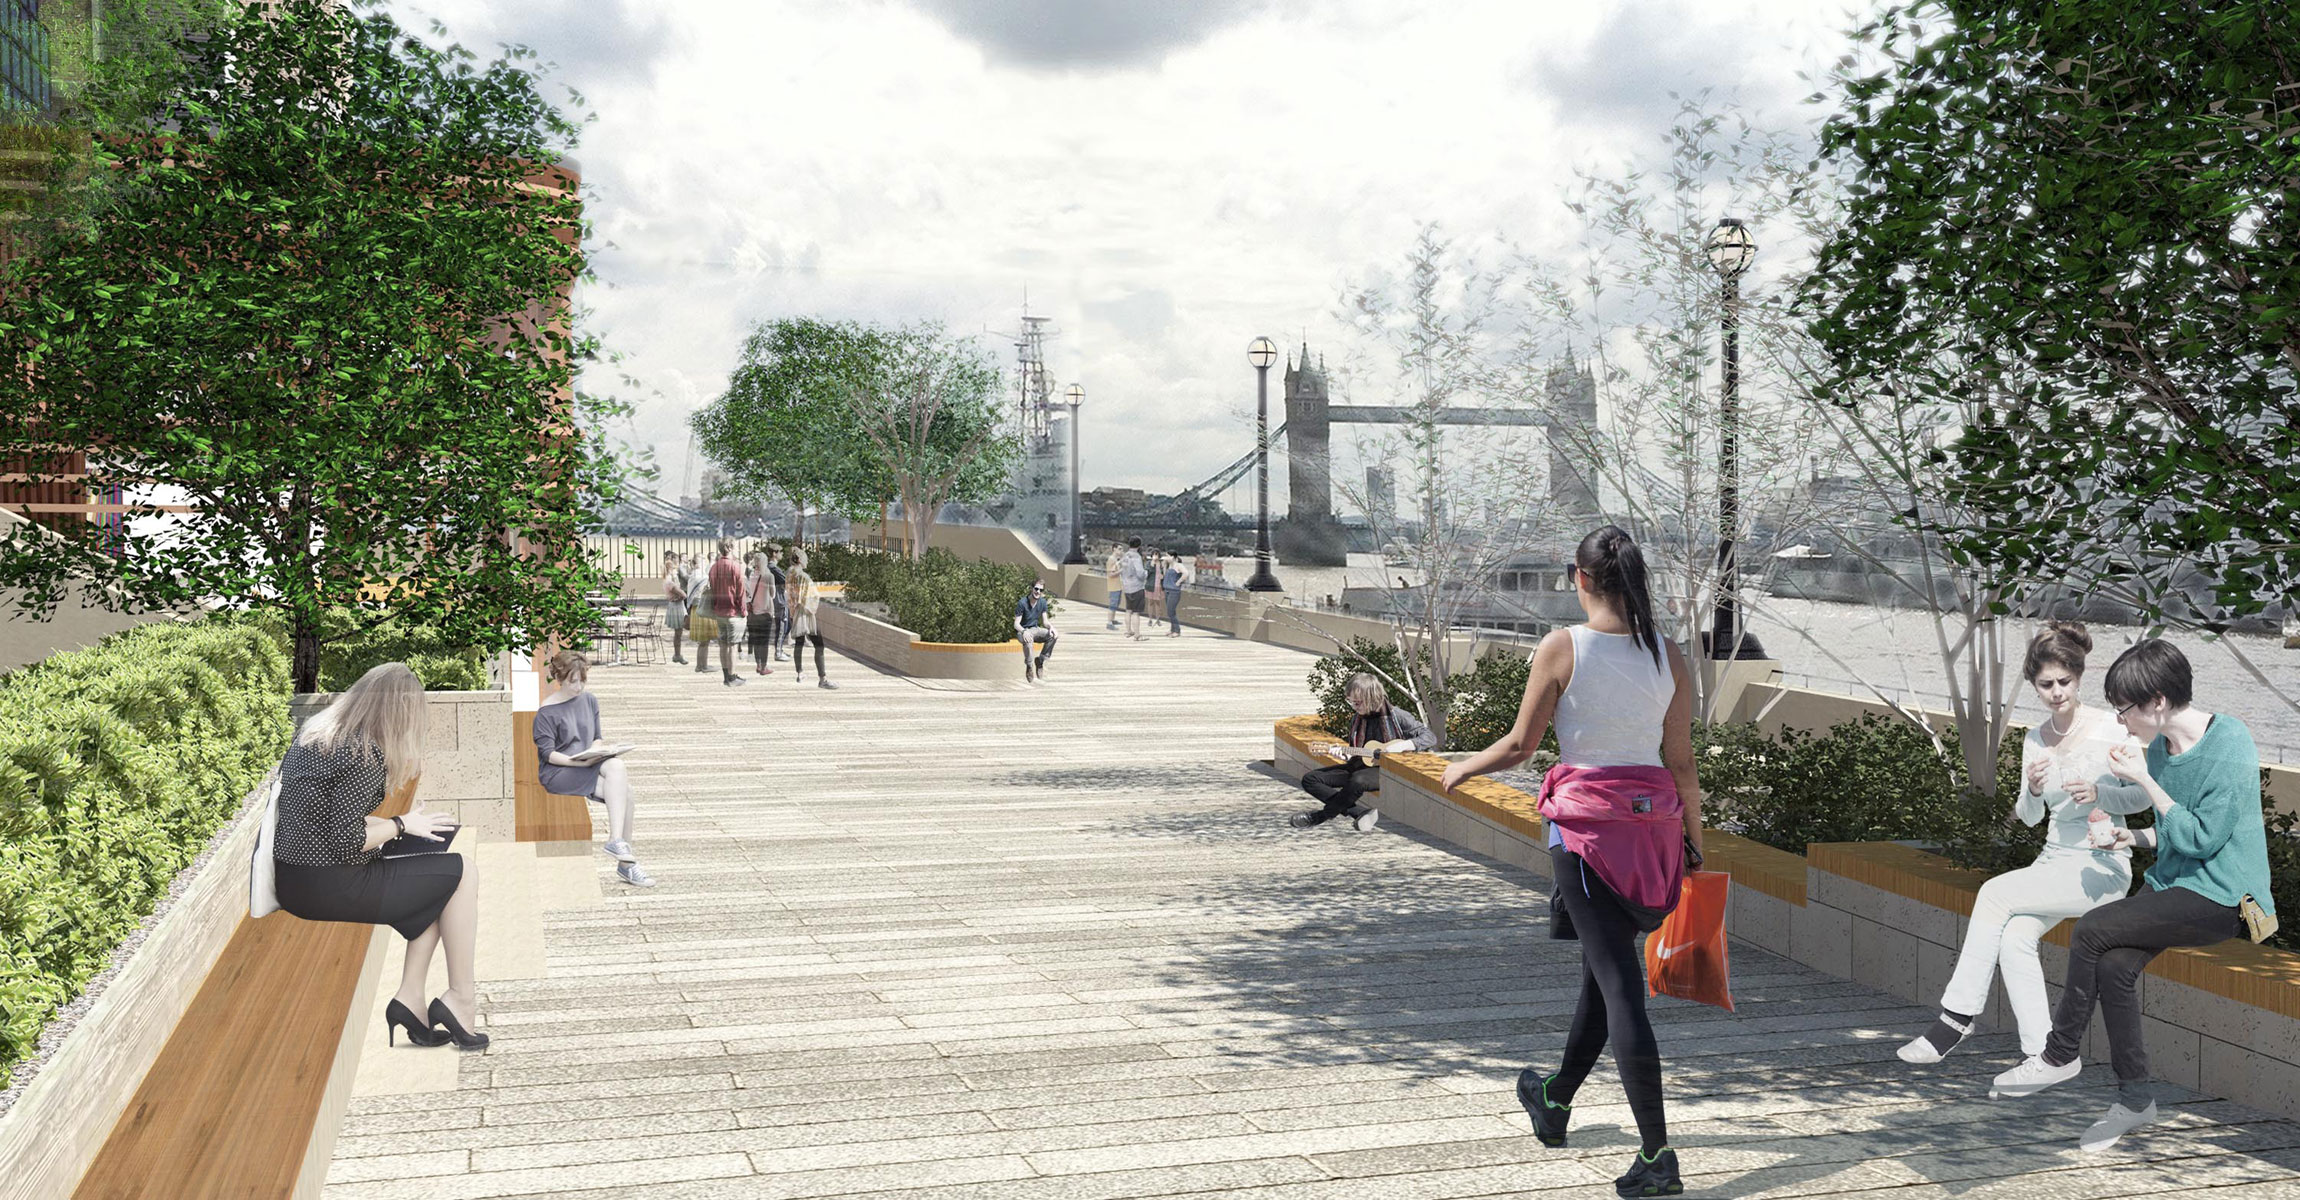 10-Lower-Thames-Street City of  London- The-new-landscaped-area